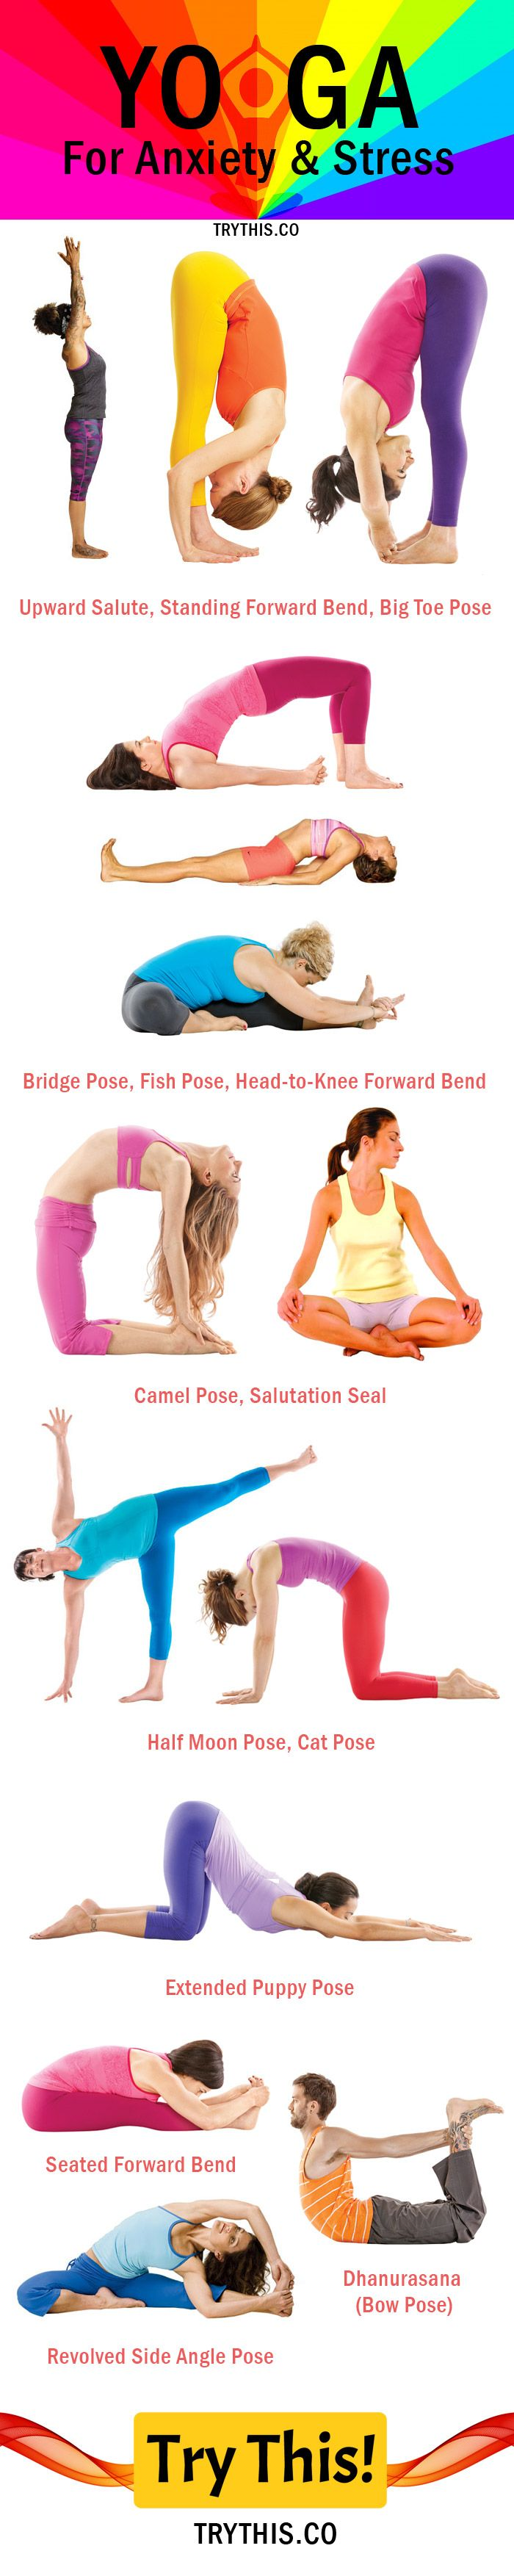 Yoga Poses For Anxiety And Stress